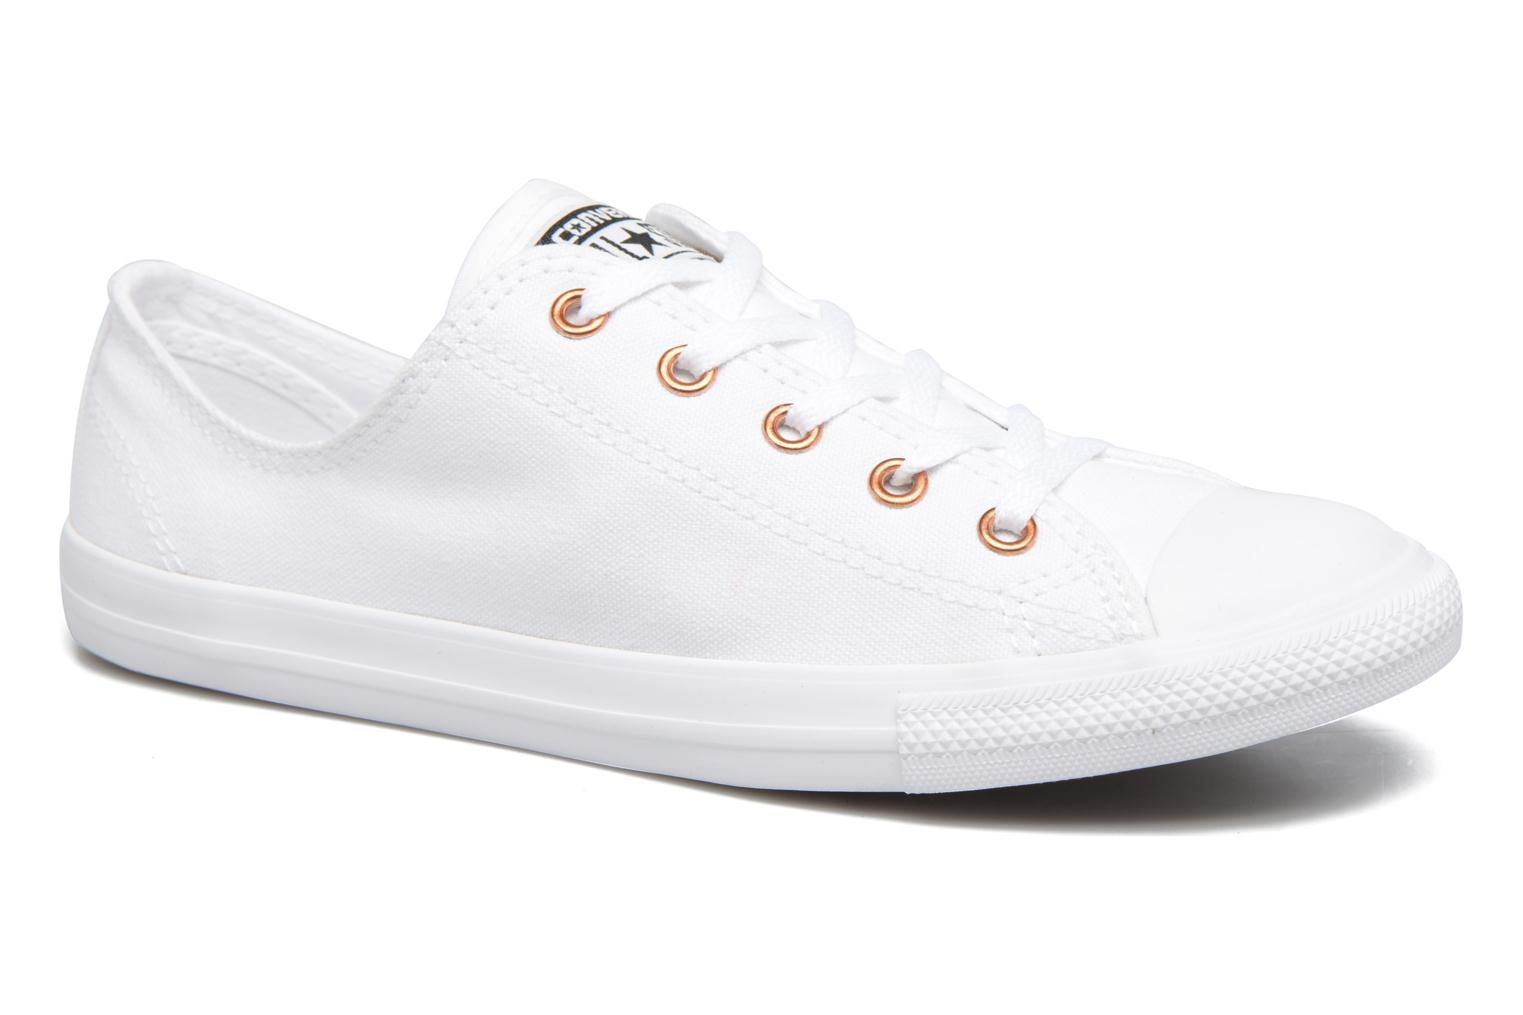 converse dainty rose gold